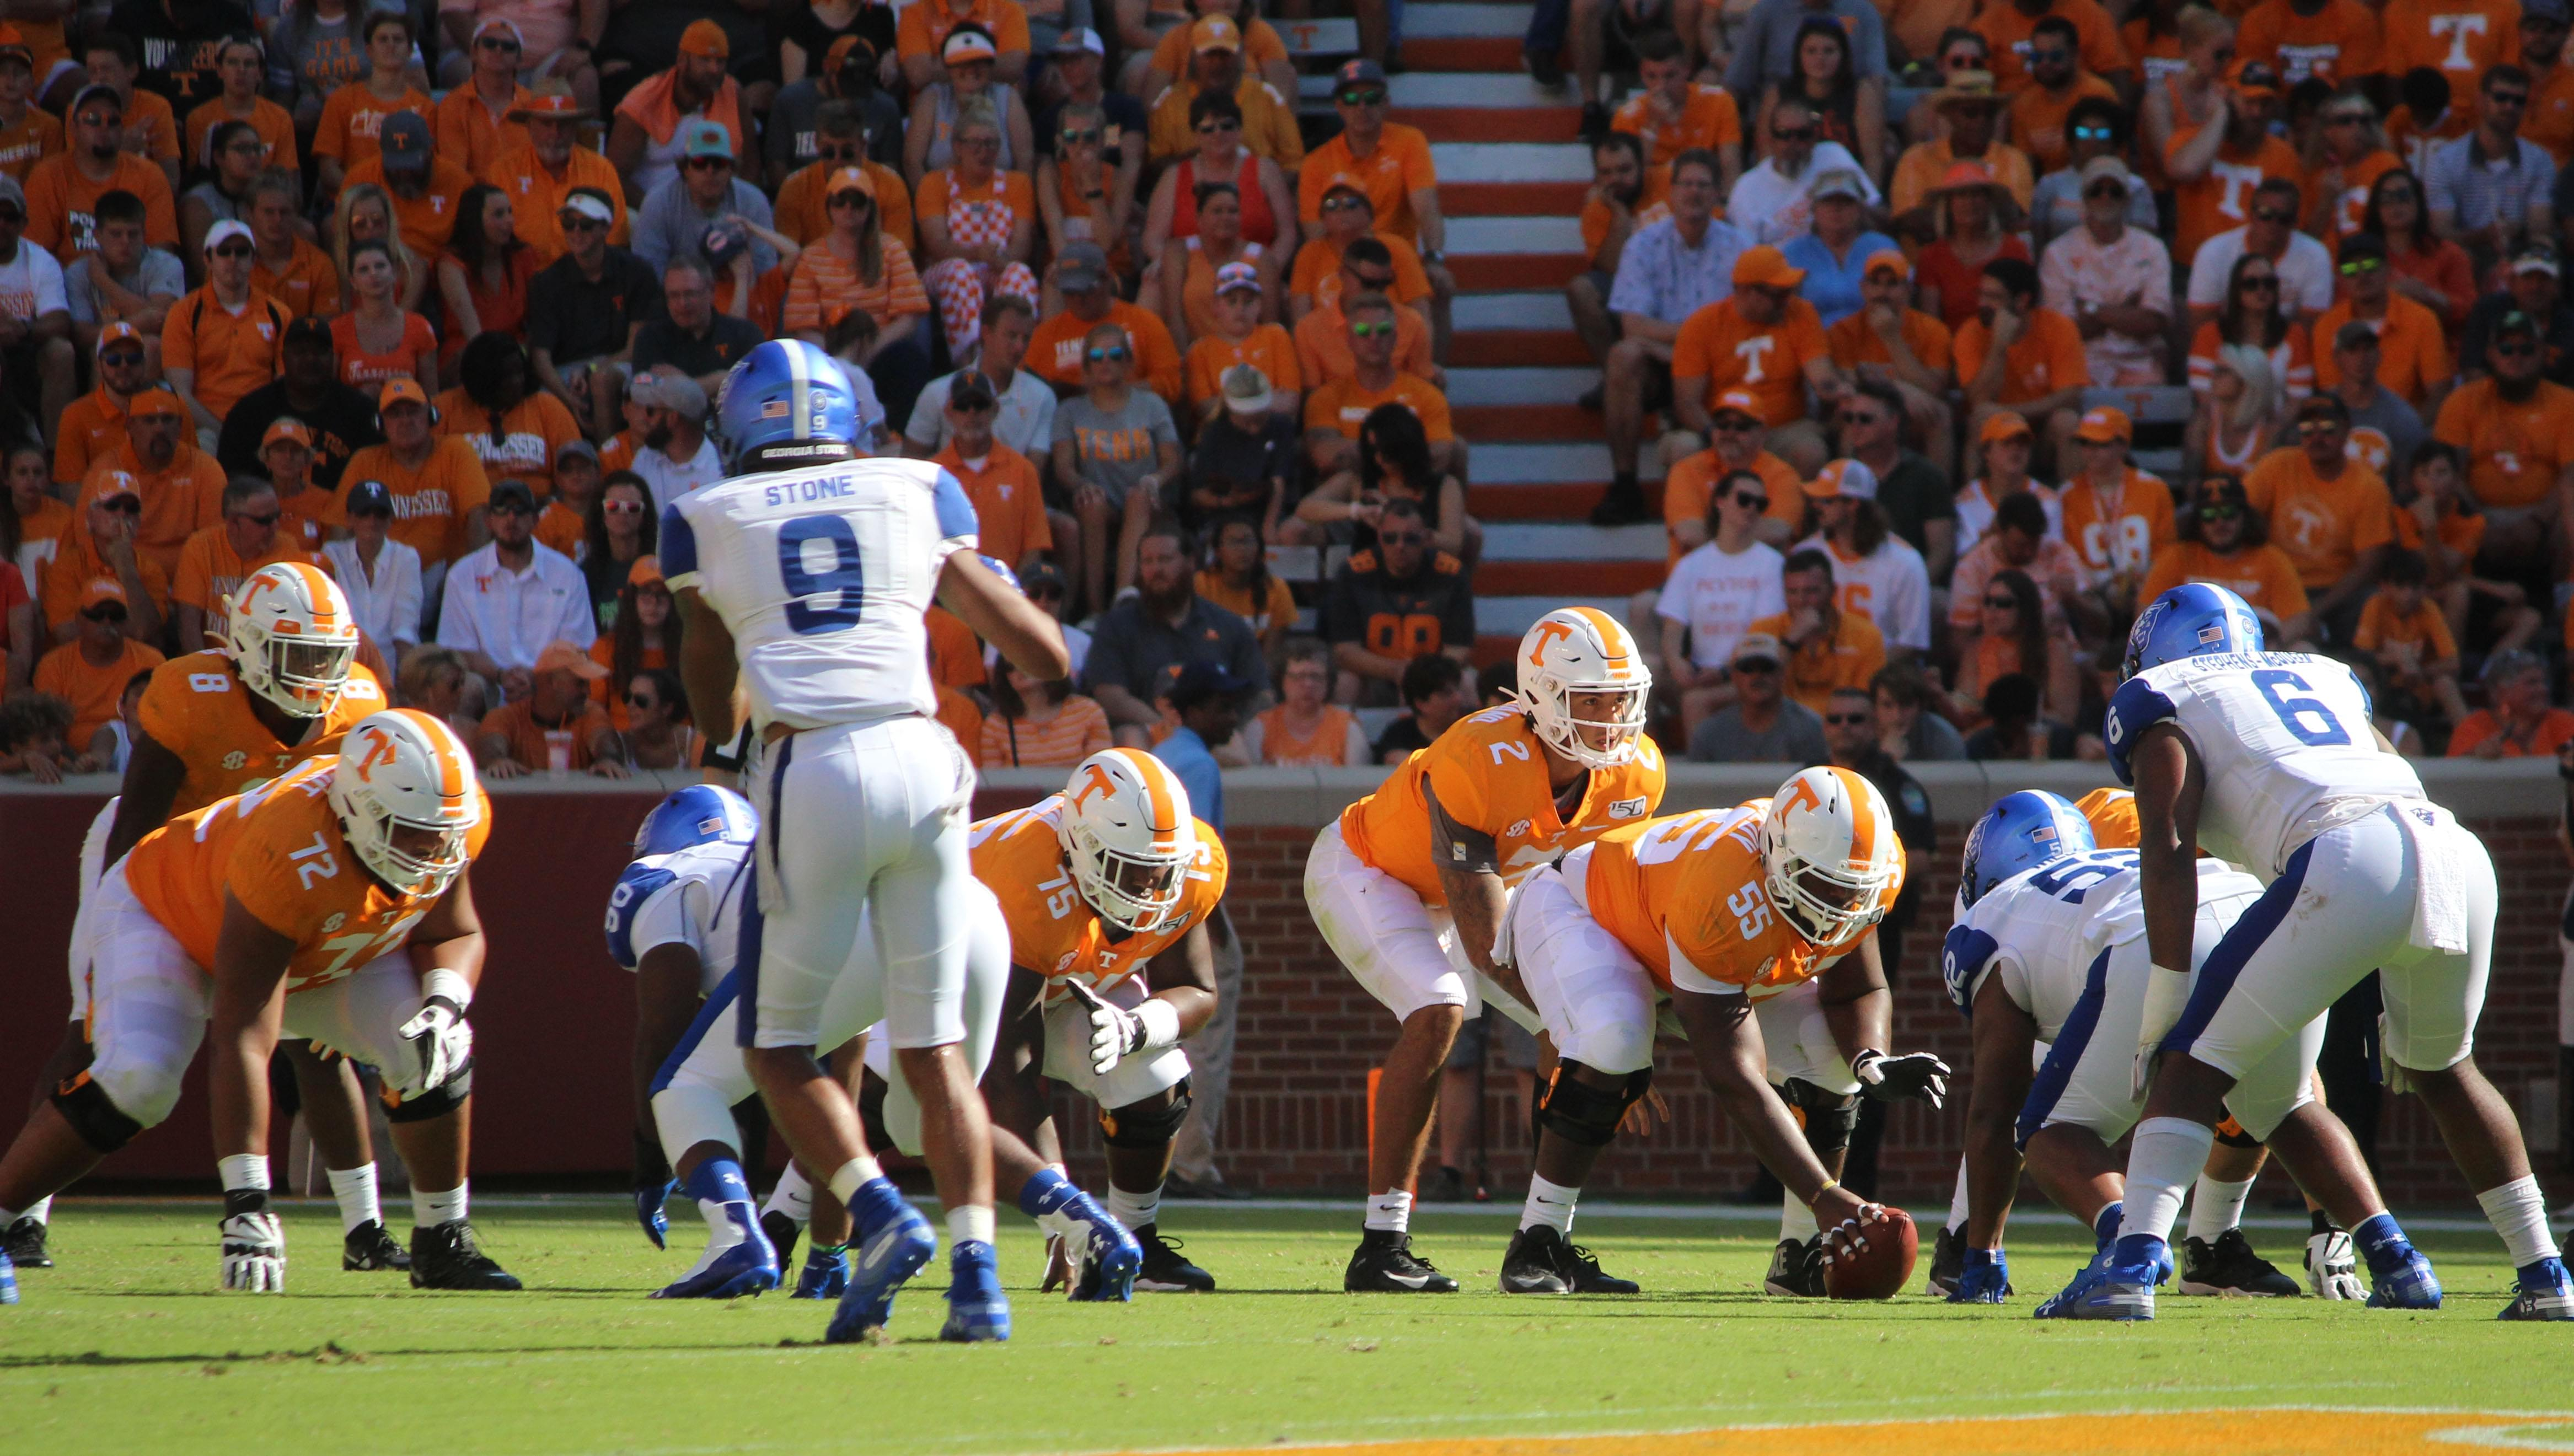 SEC score predictions including Vols/BYU, LSU/Texas